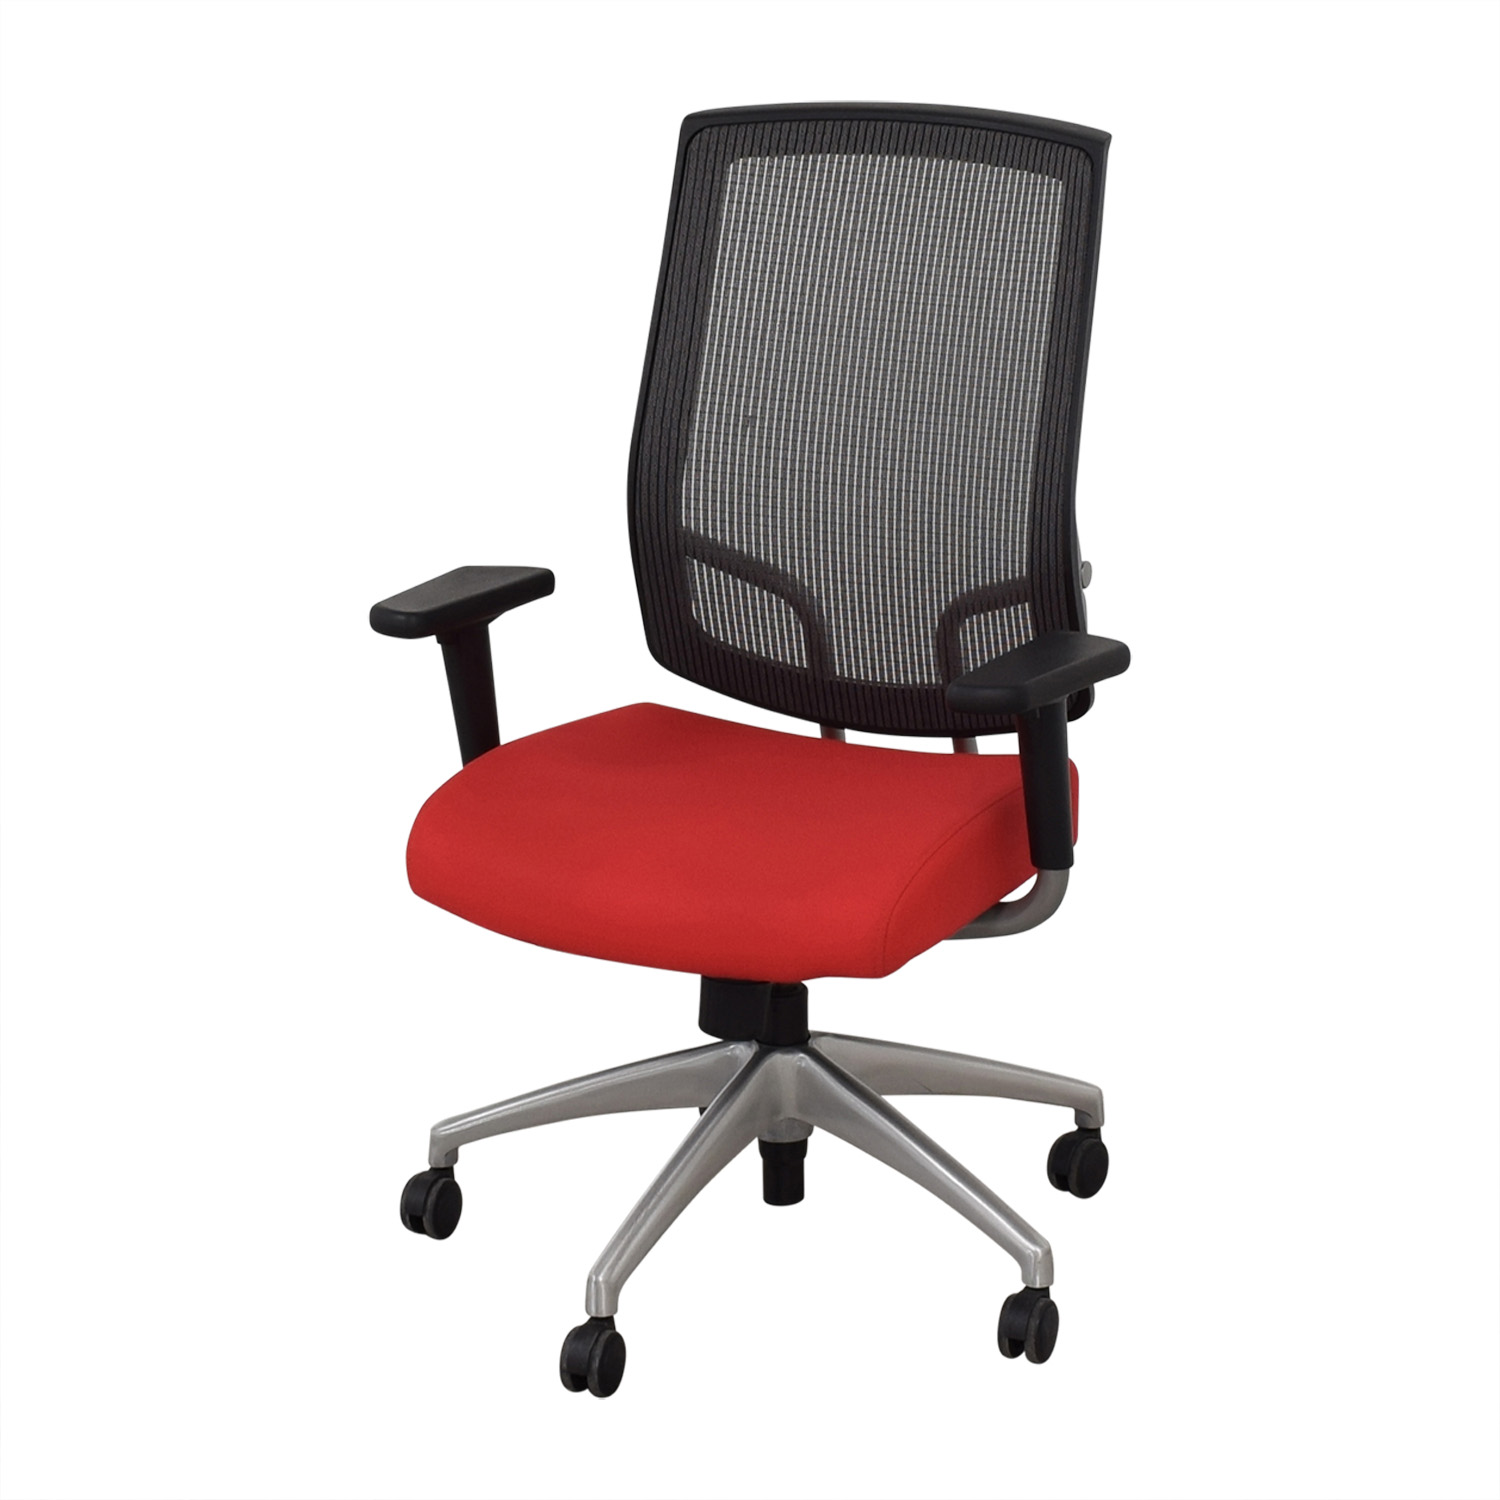 SitOnIt SitOnIt Focus High Back Office Chair ct